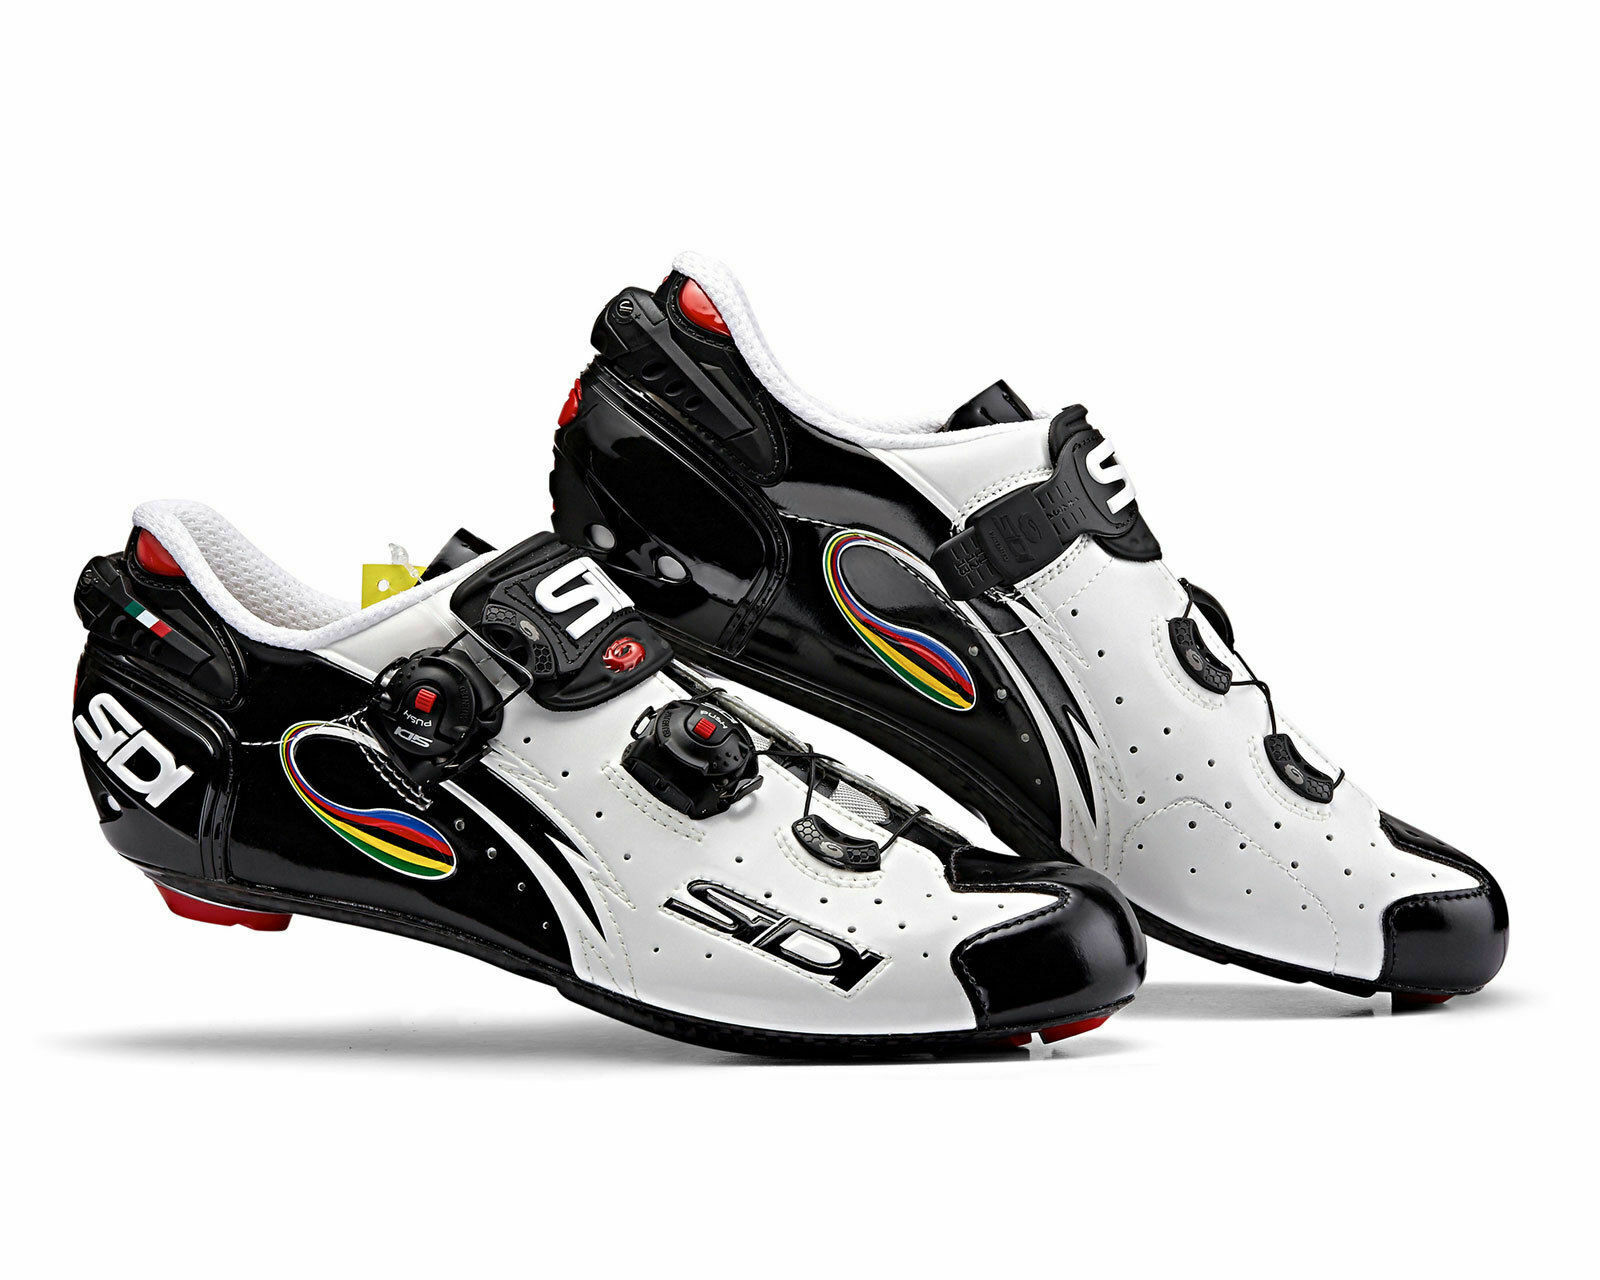 [SIDI] Wire Carbon Vernice Vernice Vernice Road Bike Bicycle Cycling scarpe bianca-nero-Iride 5fdf7c